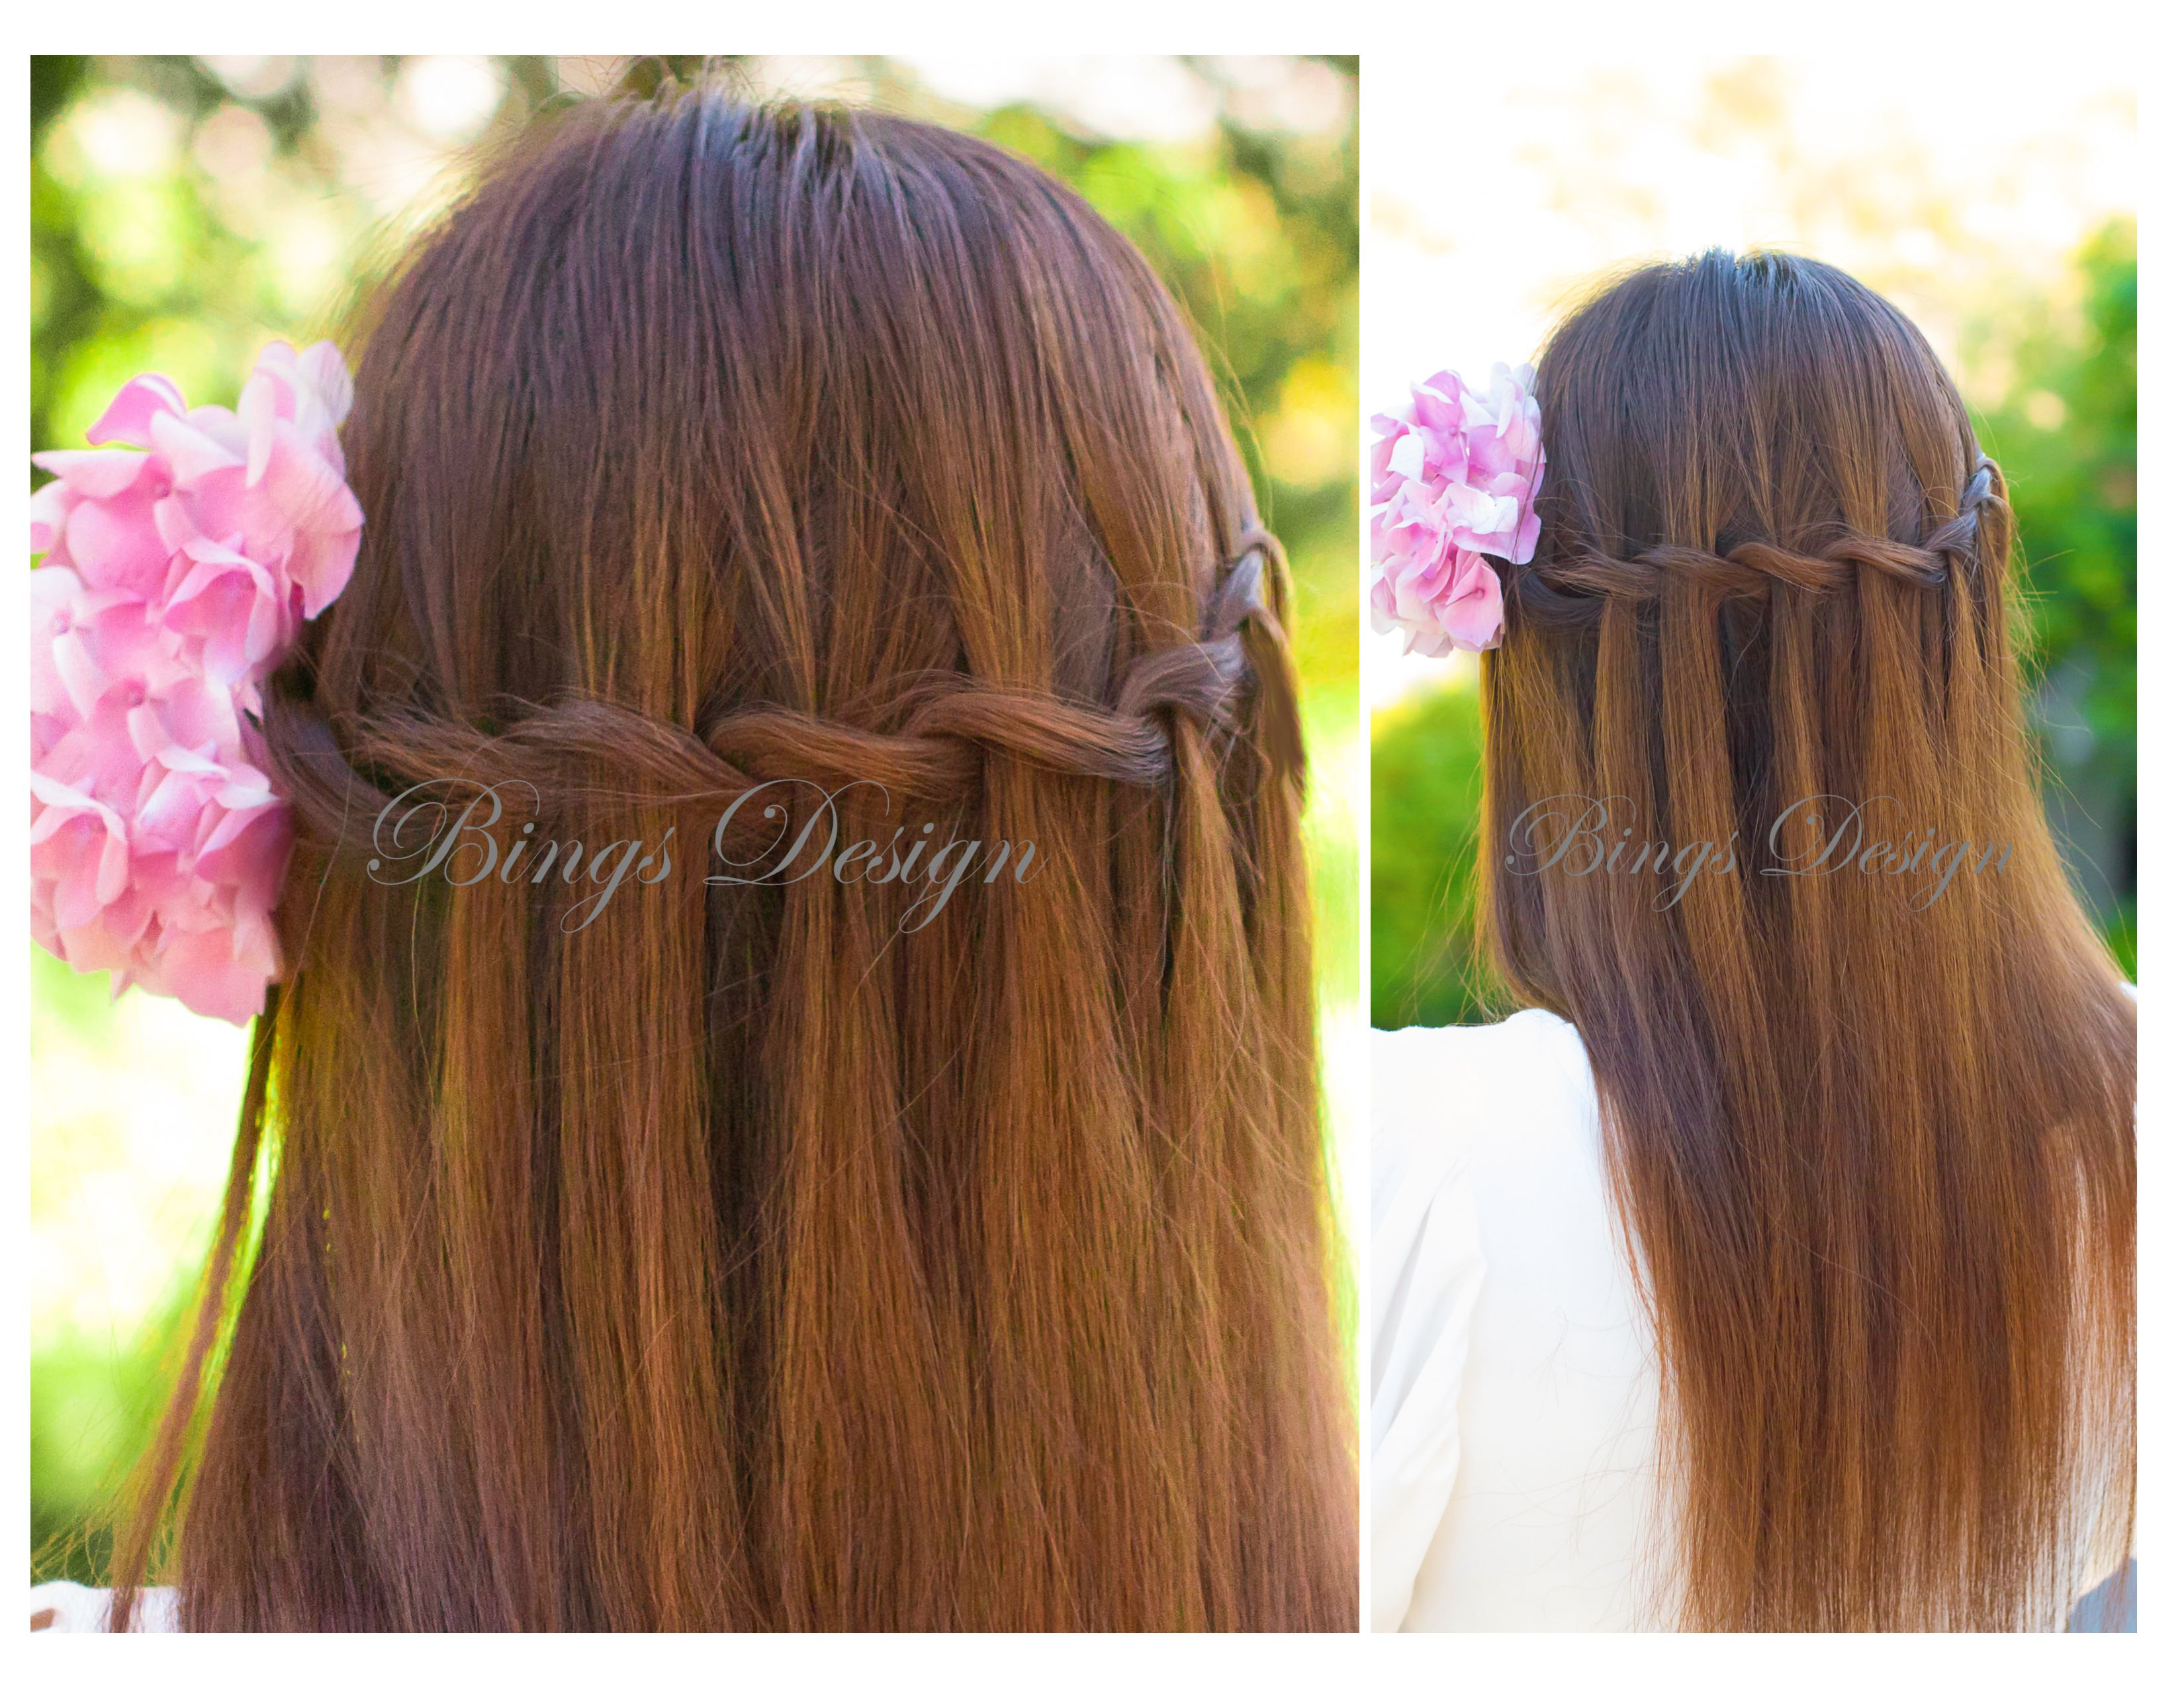 Water Fall Hairstyle For Straight Long Hair Www Bingsdesign Com Long Hair Styles Straight Hair Dos Long Straight Hair